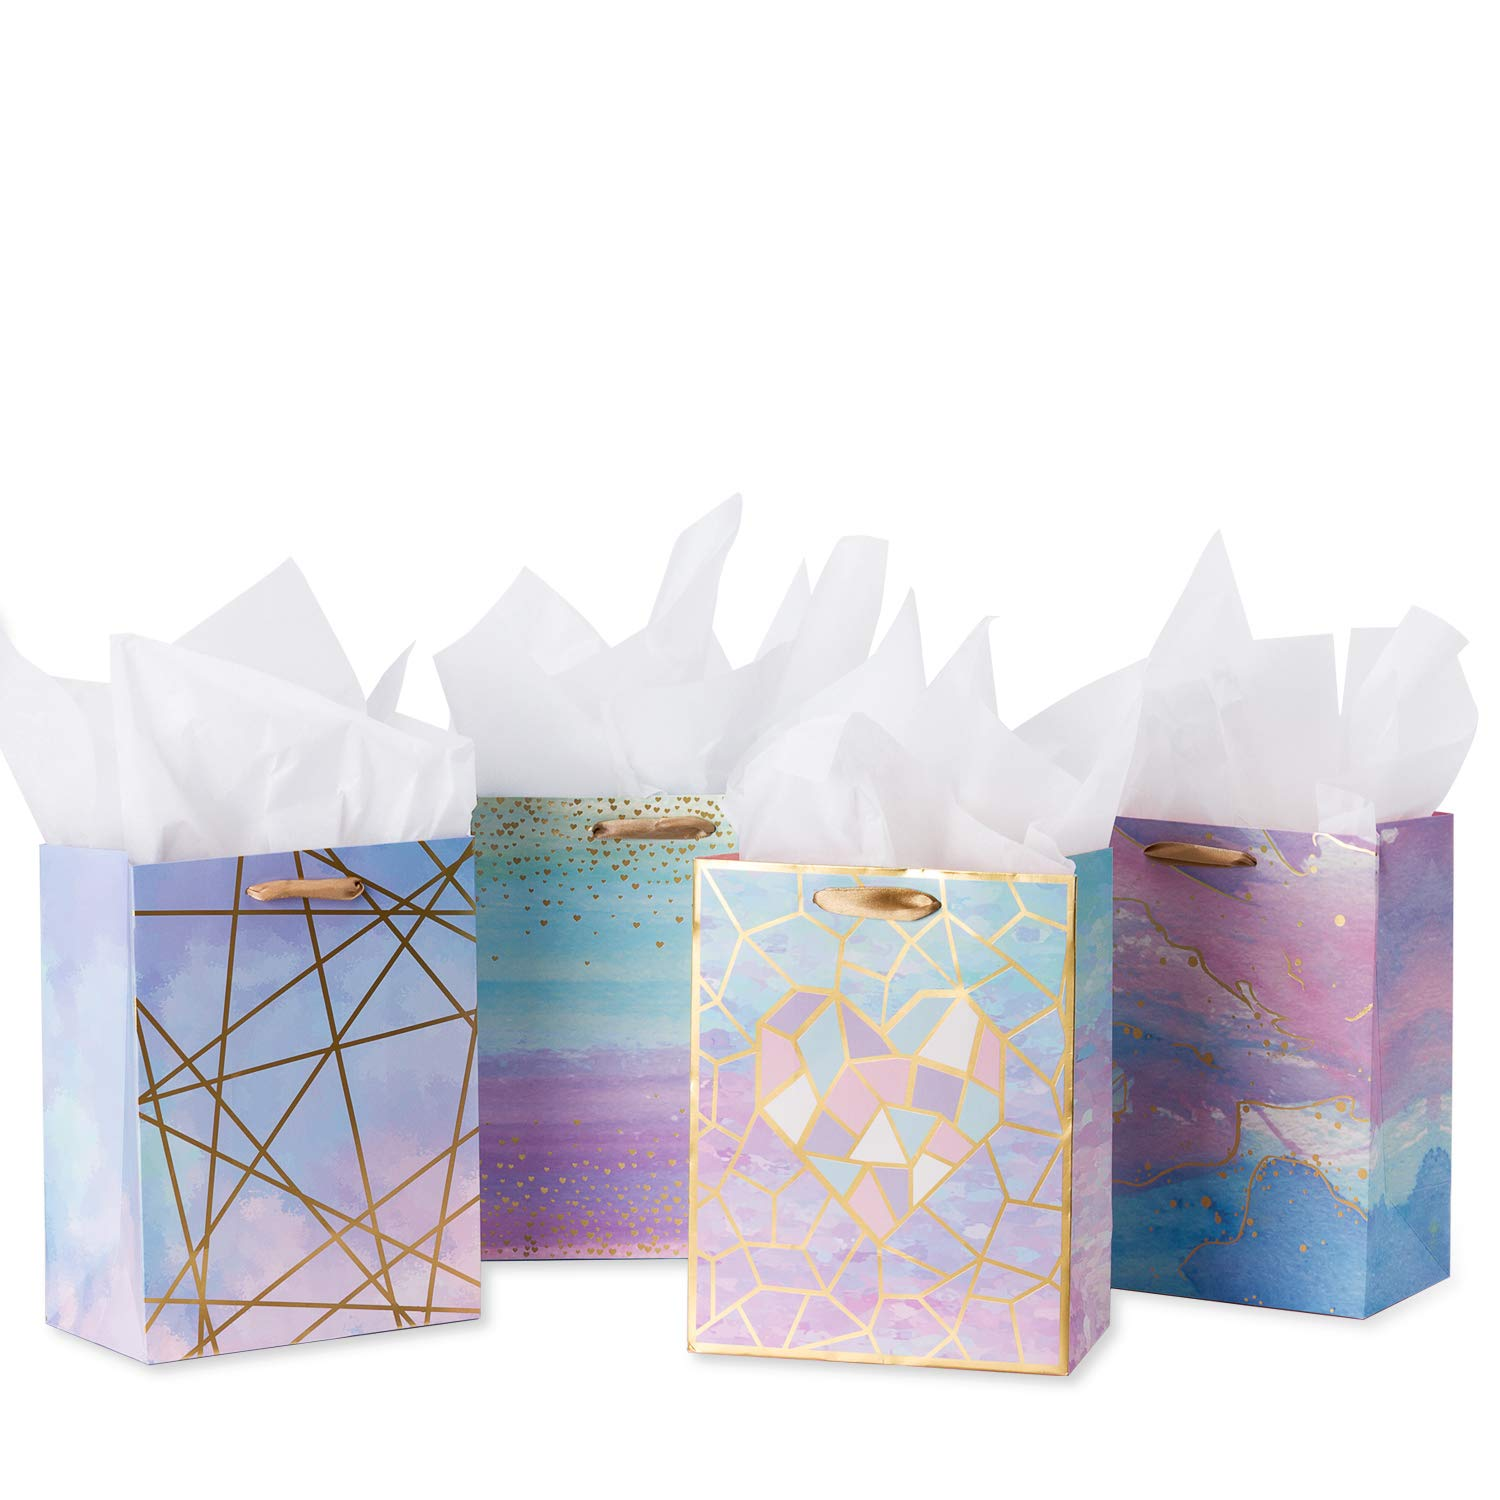 """Loveinside Medium Size Gift Bags-Colorful Marble Pattern Gift Bag with Tissue Paper for Shopping,Parties,Wedding, Baby Shower, Craft-4 Pack-7"""" X 4"""" X 9"""""""